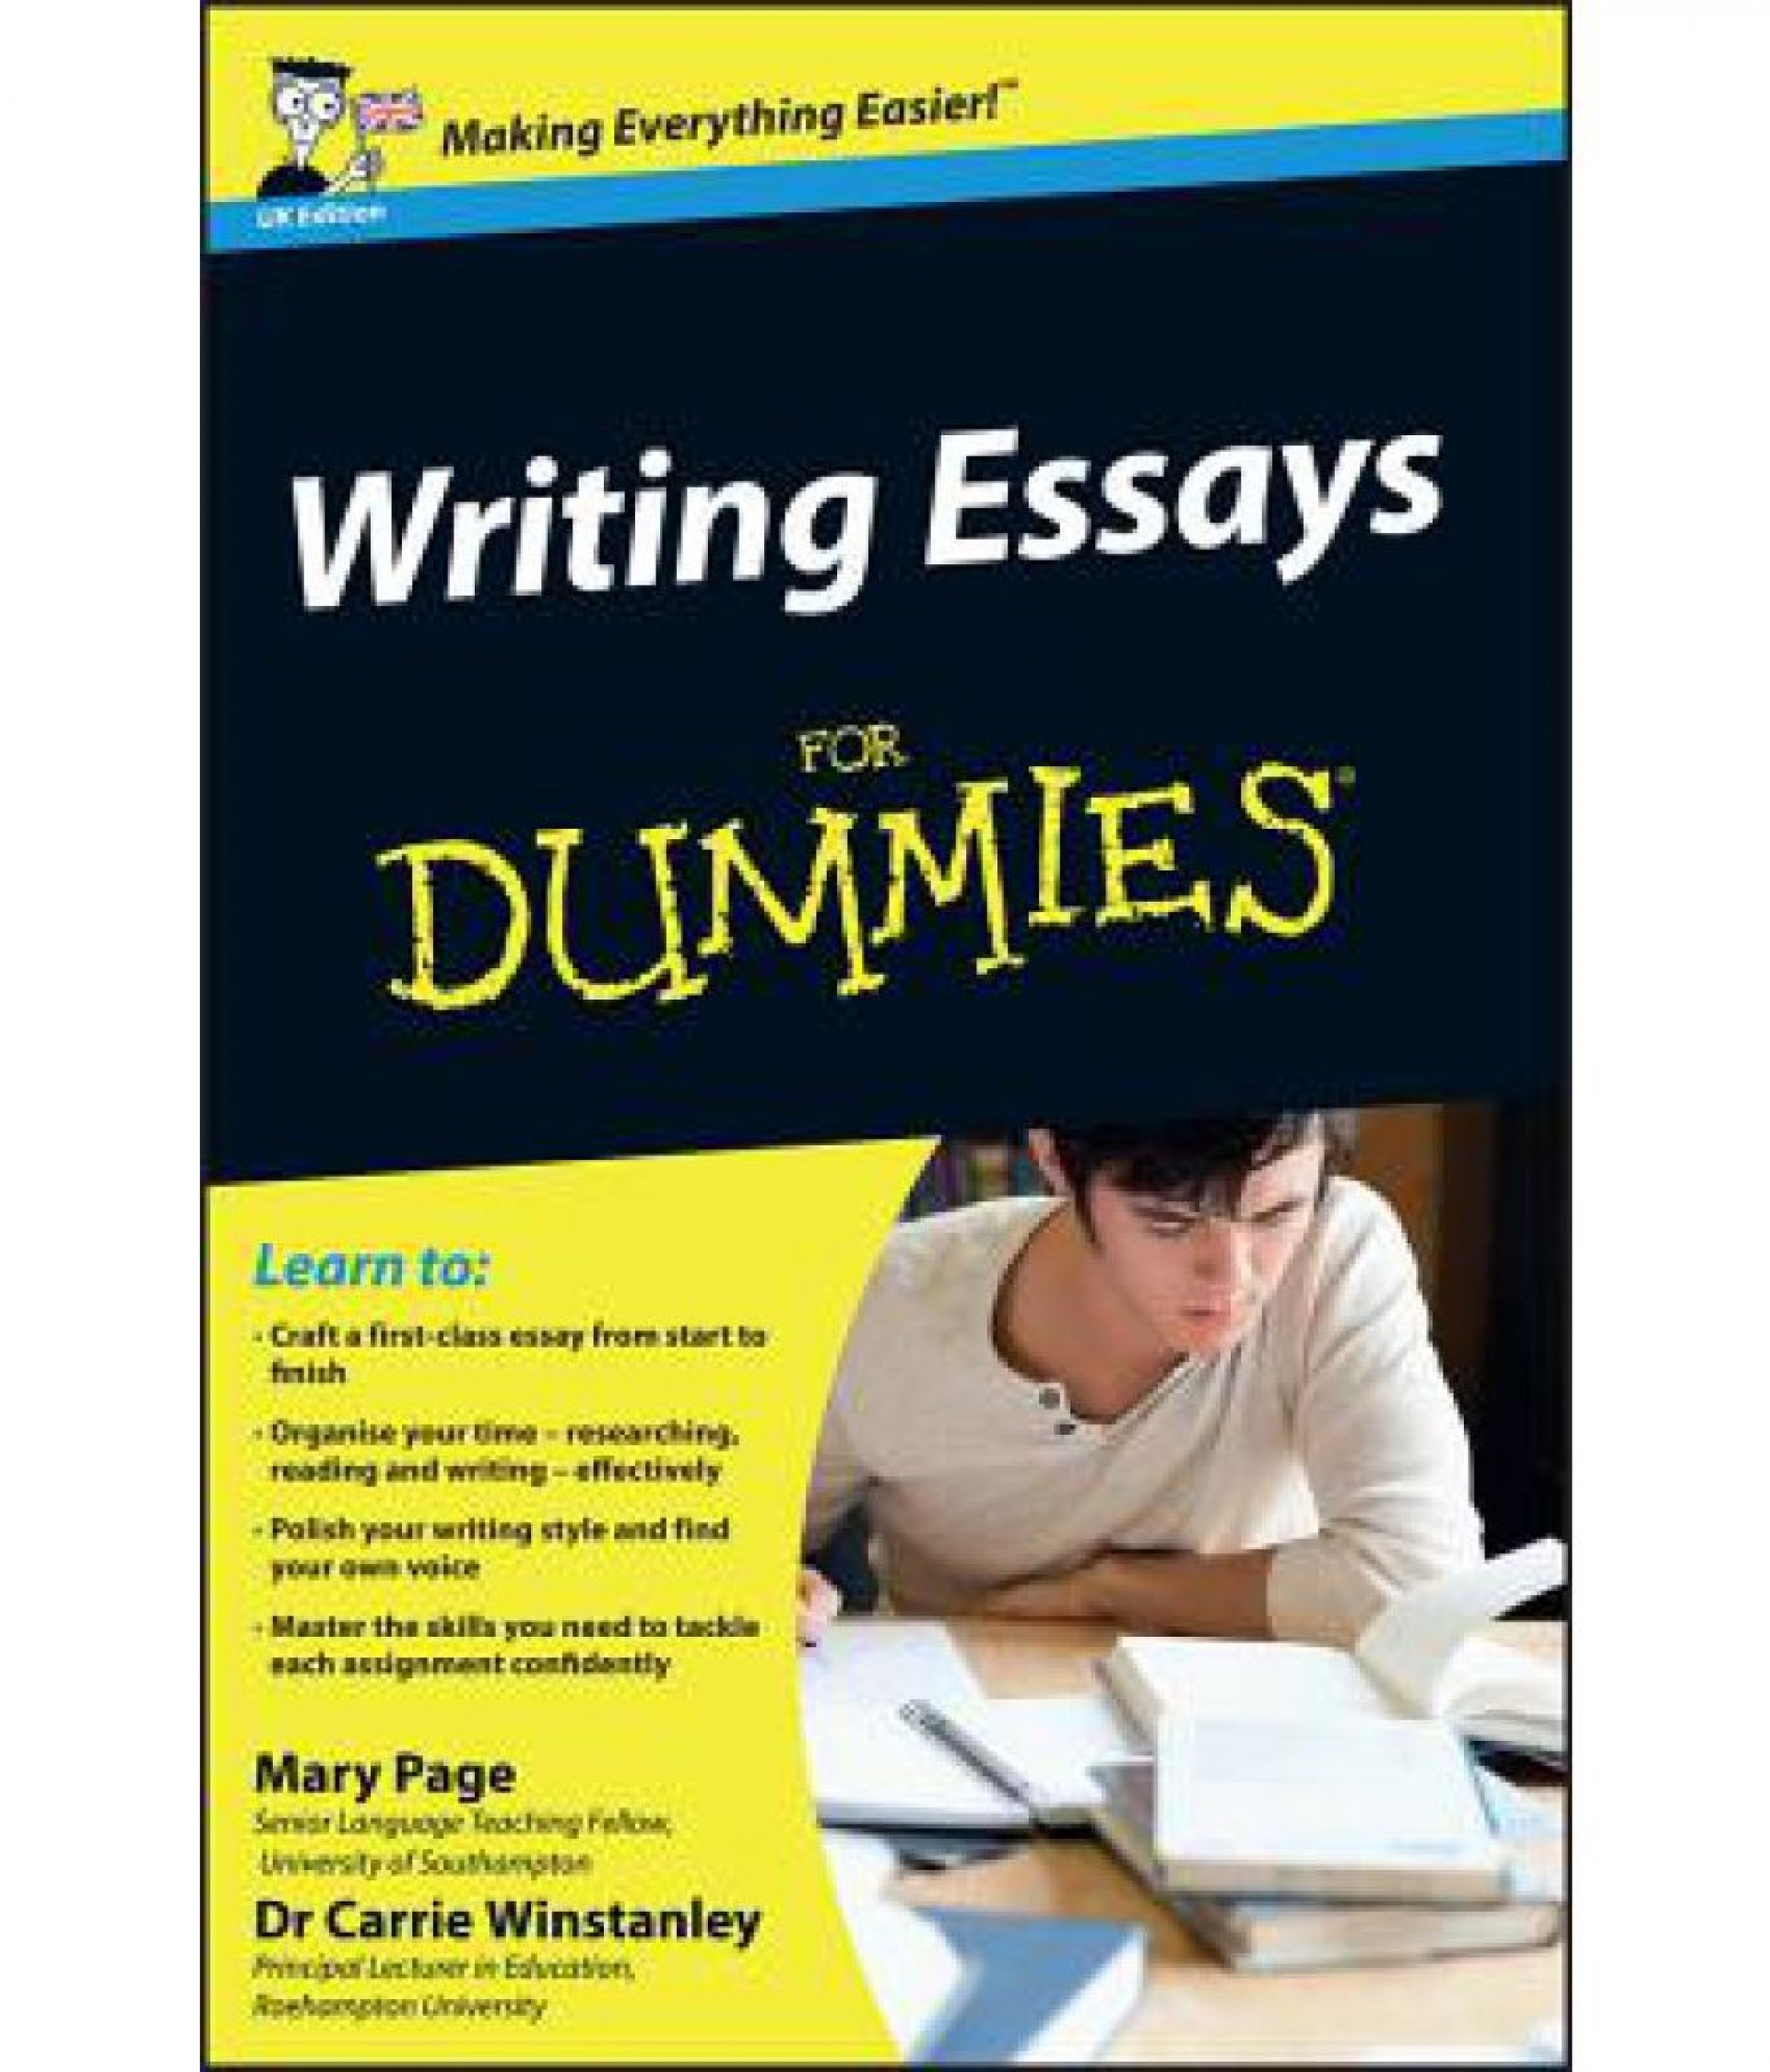 003 Writing Essays For Dummies Sdl427789710 Essay Wondrous Cheat Sheet Free Download Pdf 1920